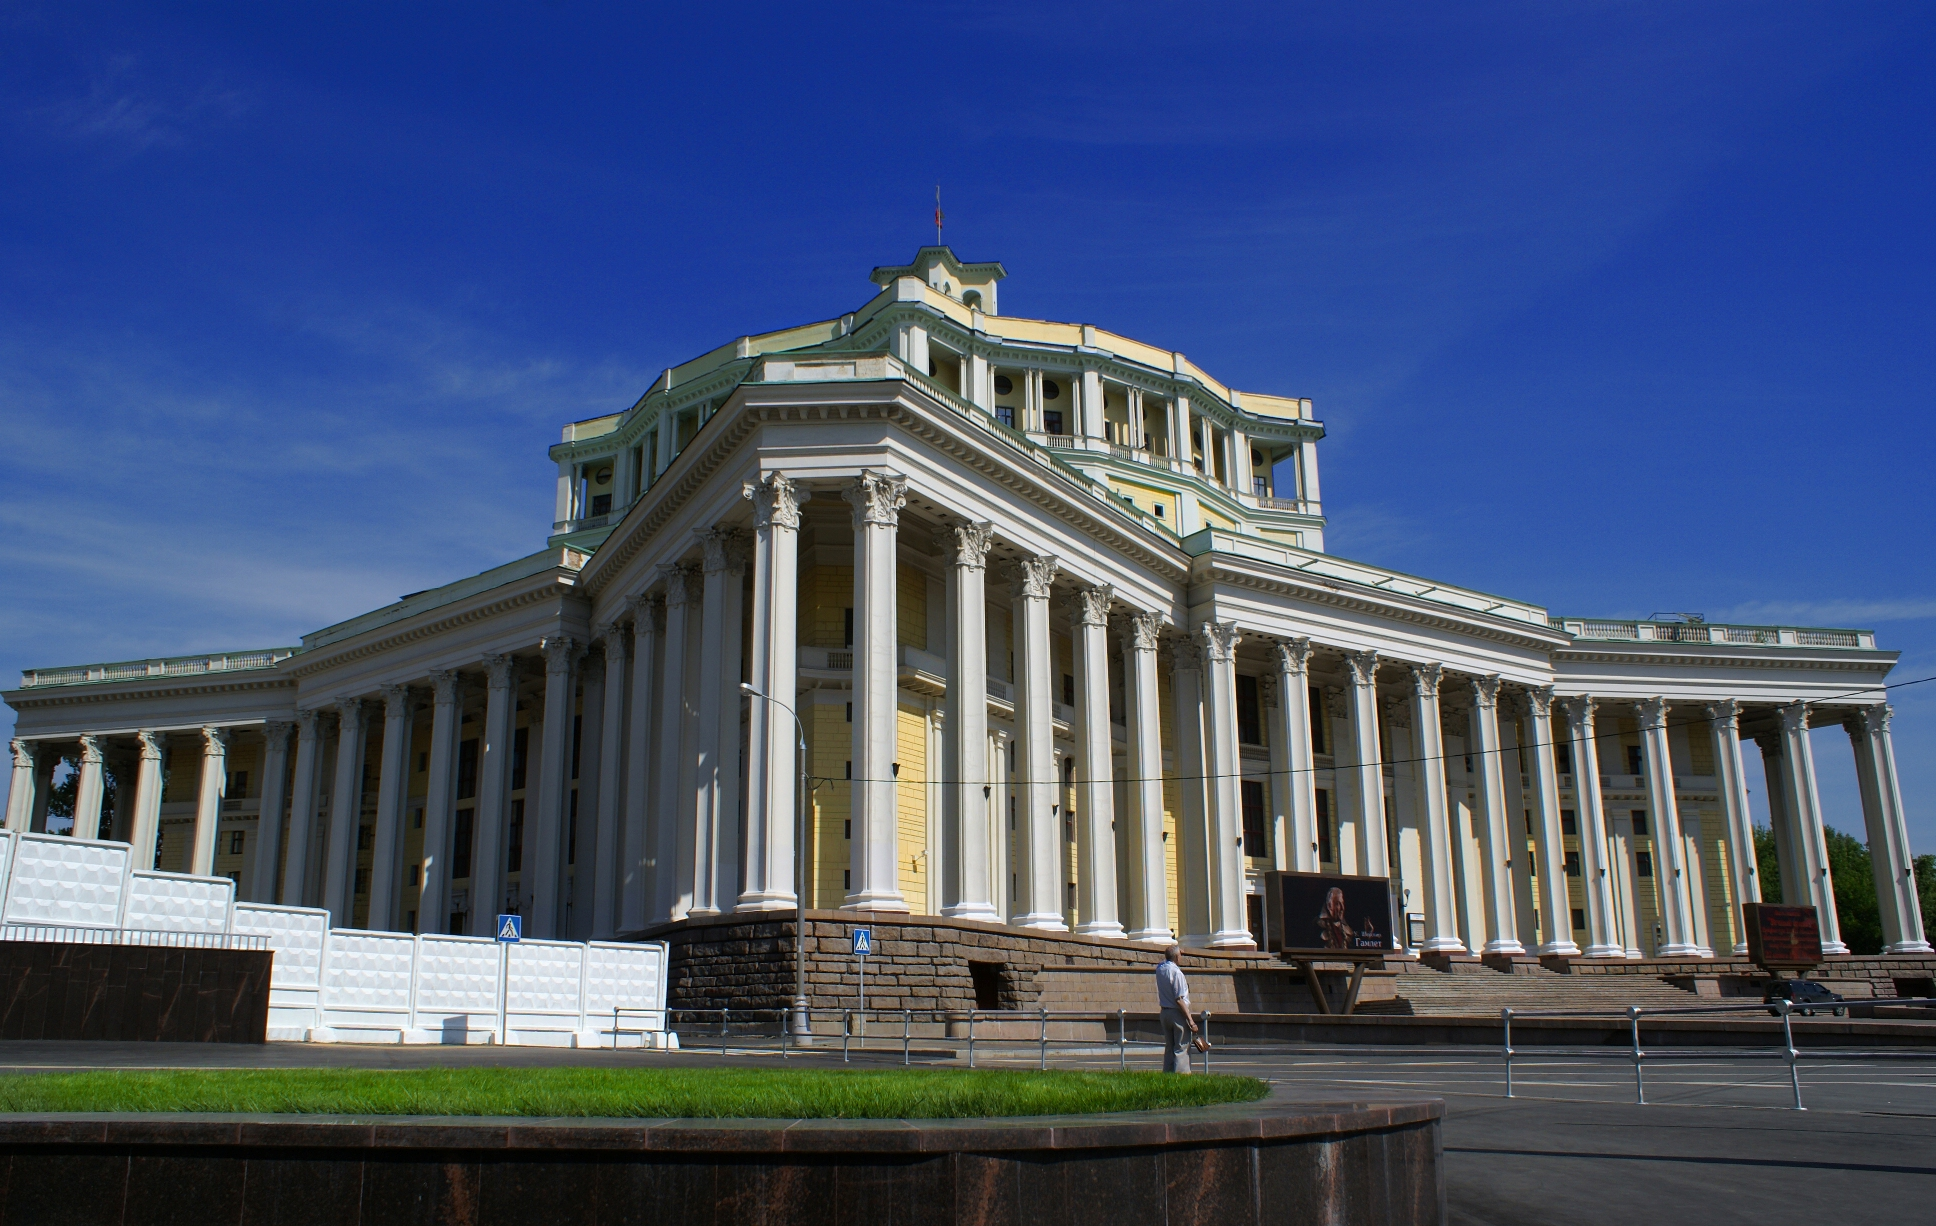 Central Academic Theatre of the Russian Army